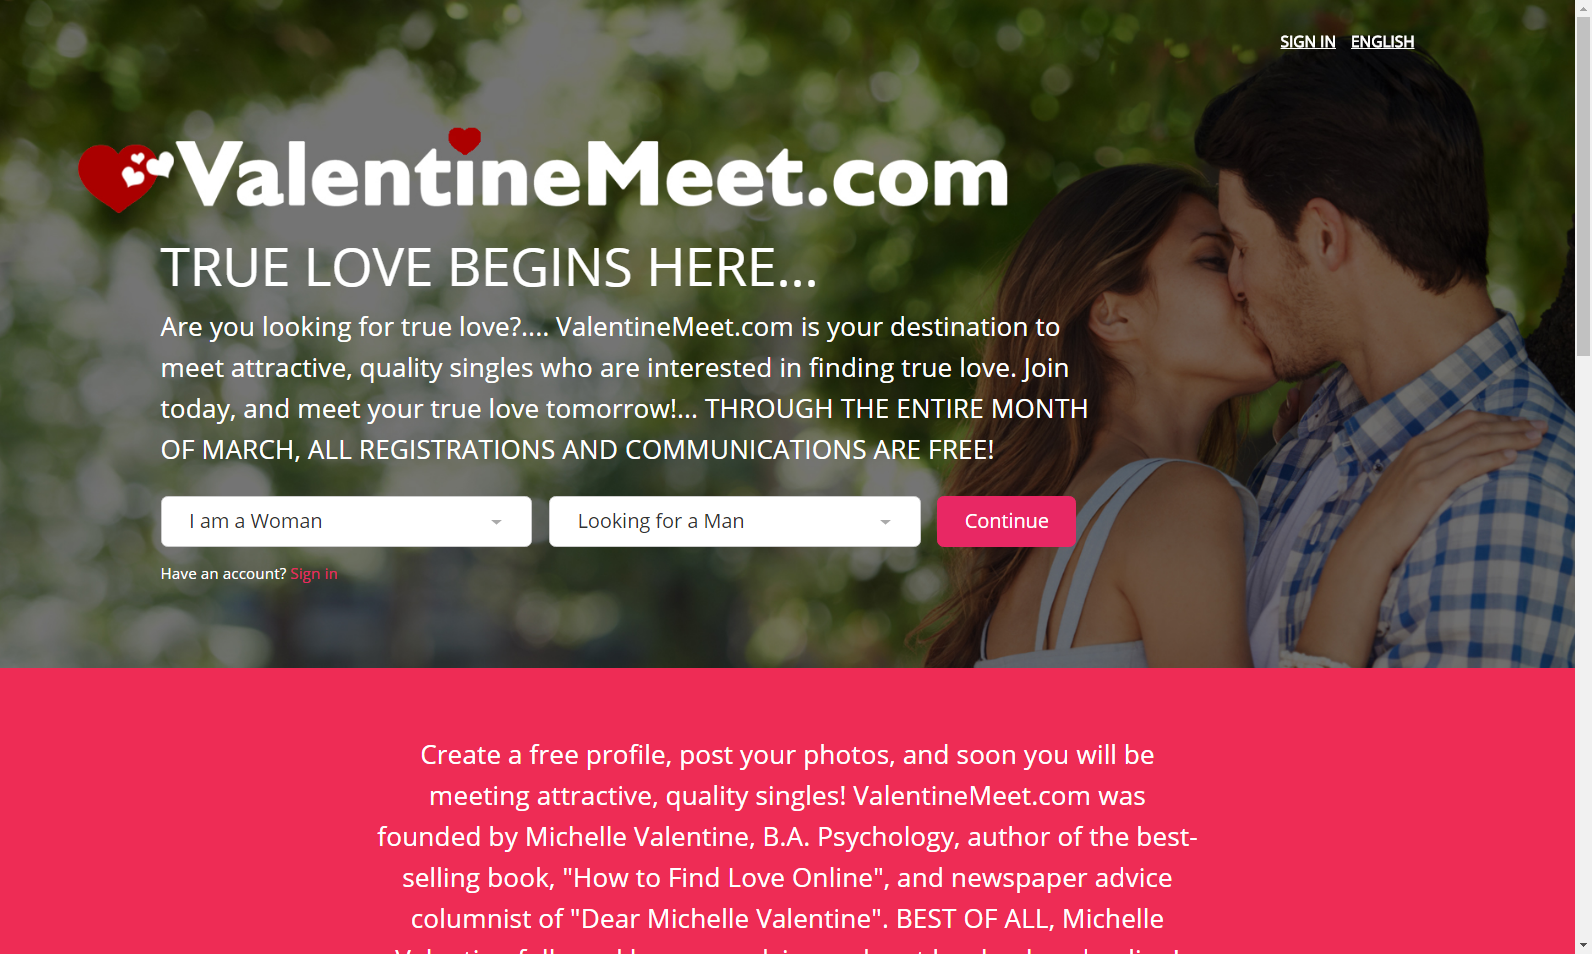 Dating site run by psychologist